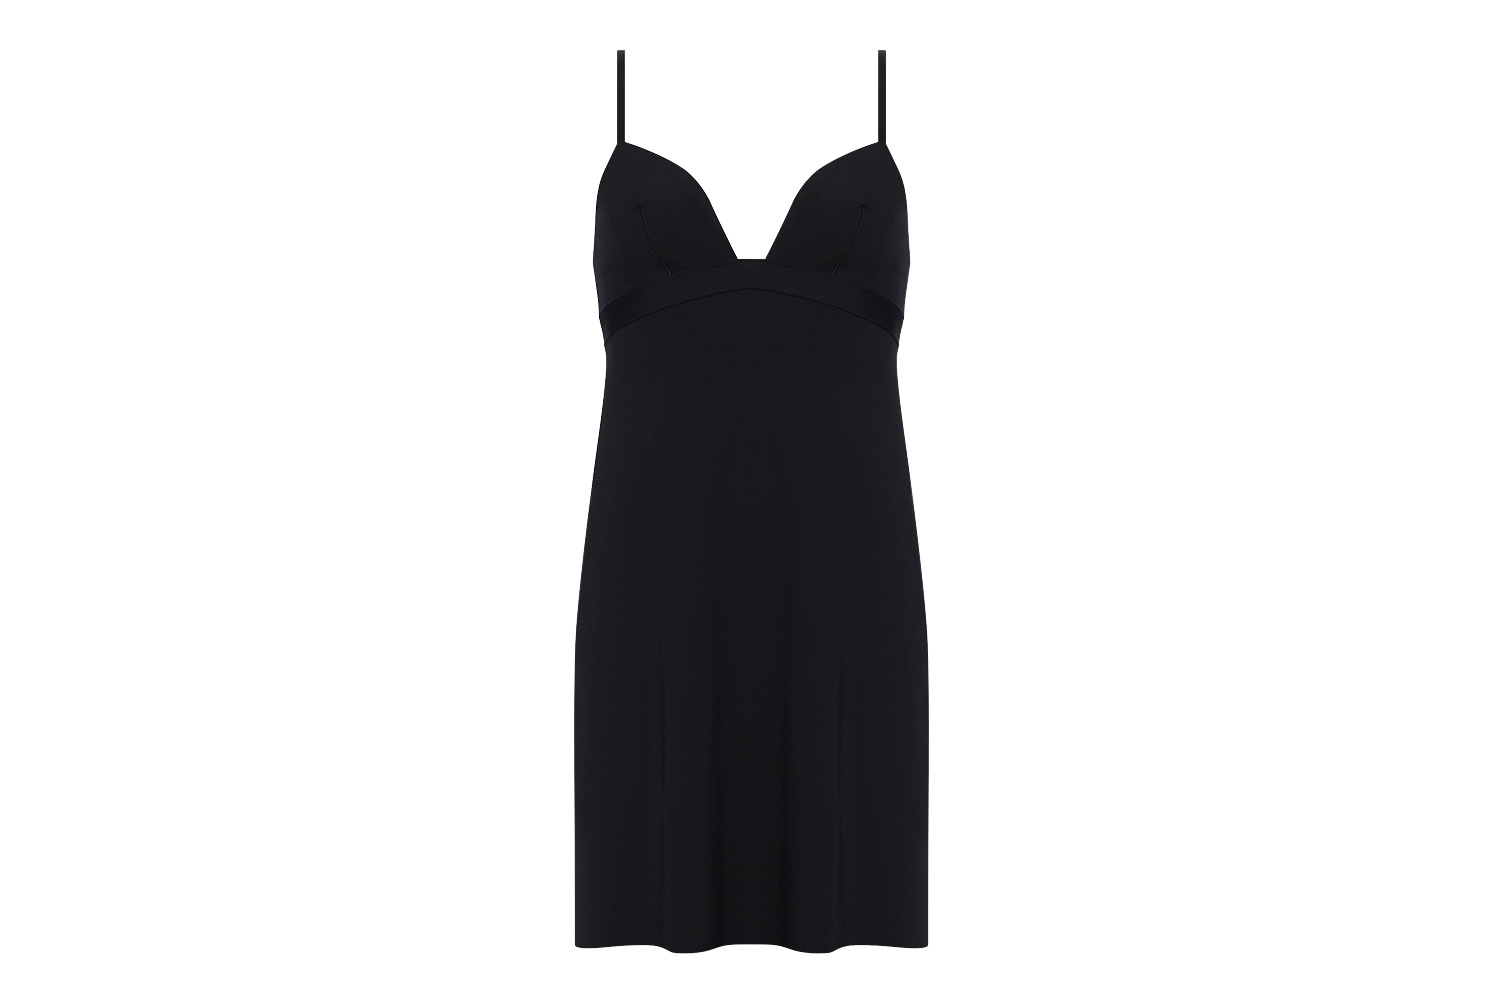 Silhouette courte Underdress standard view 4